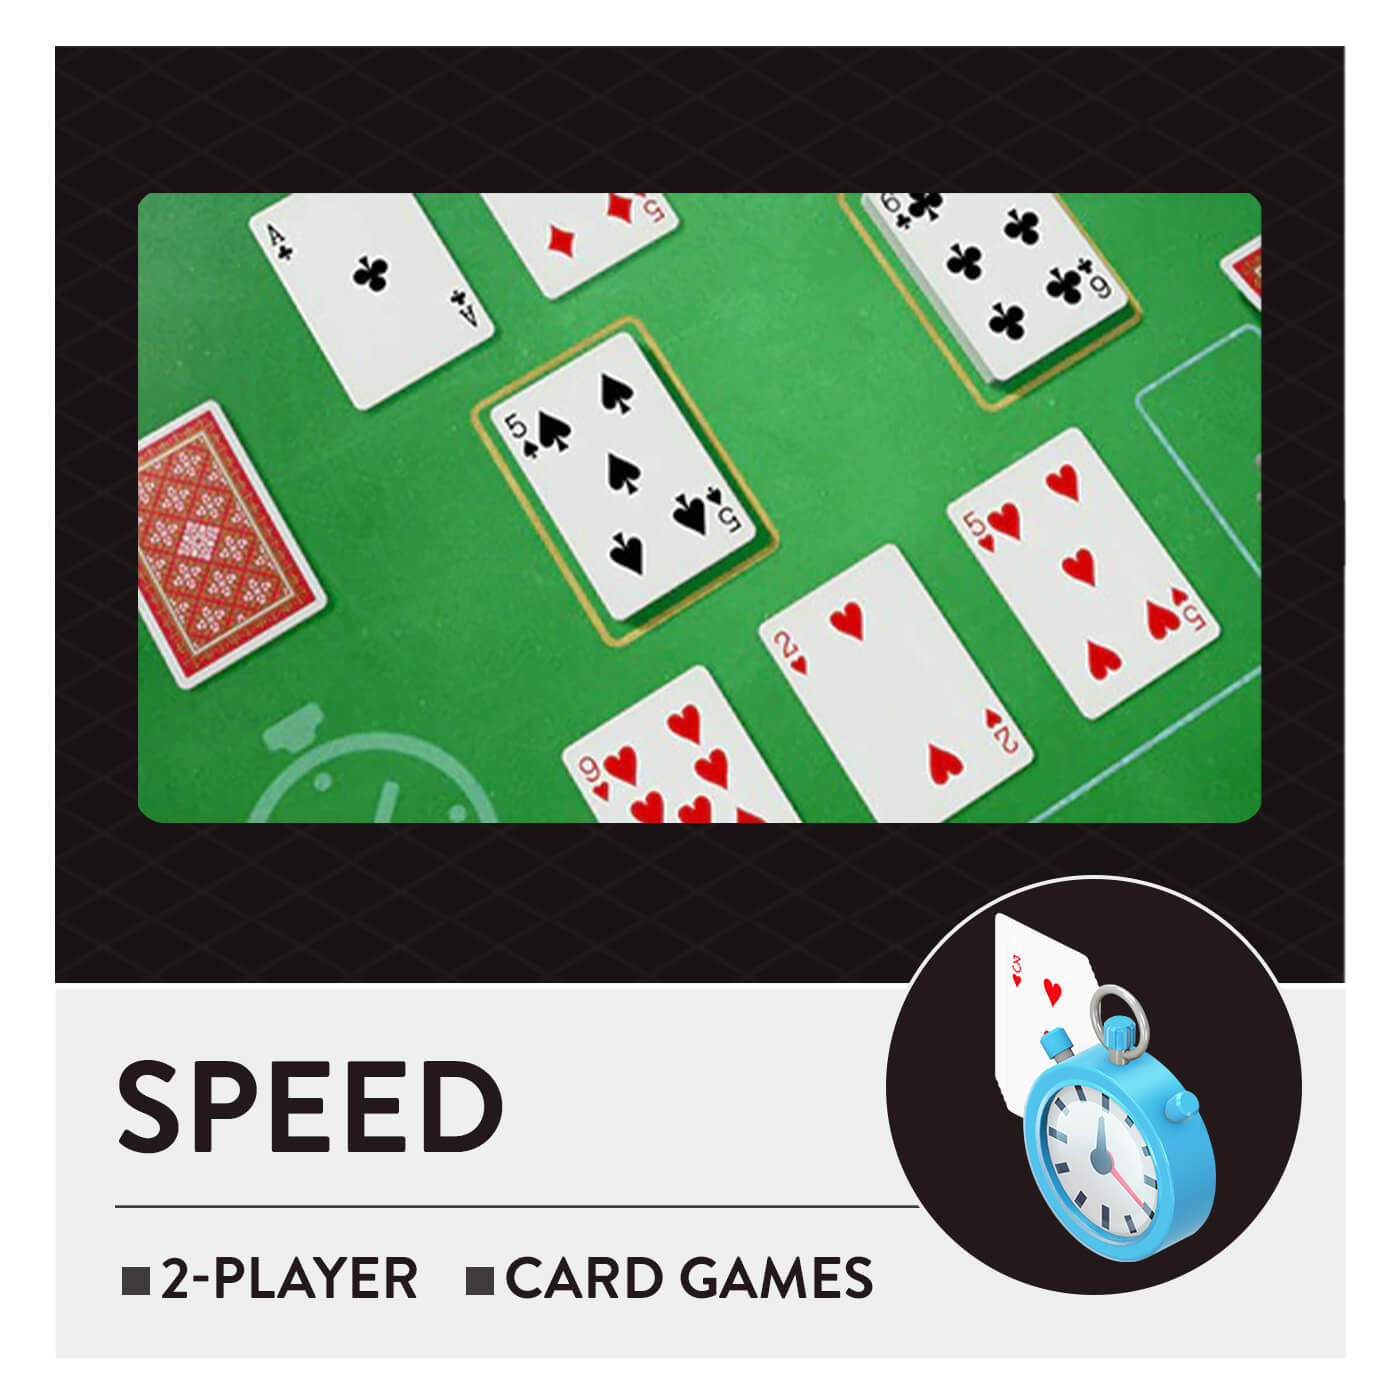 51 Worldwide Games - Speed